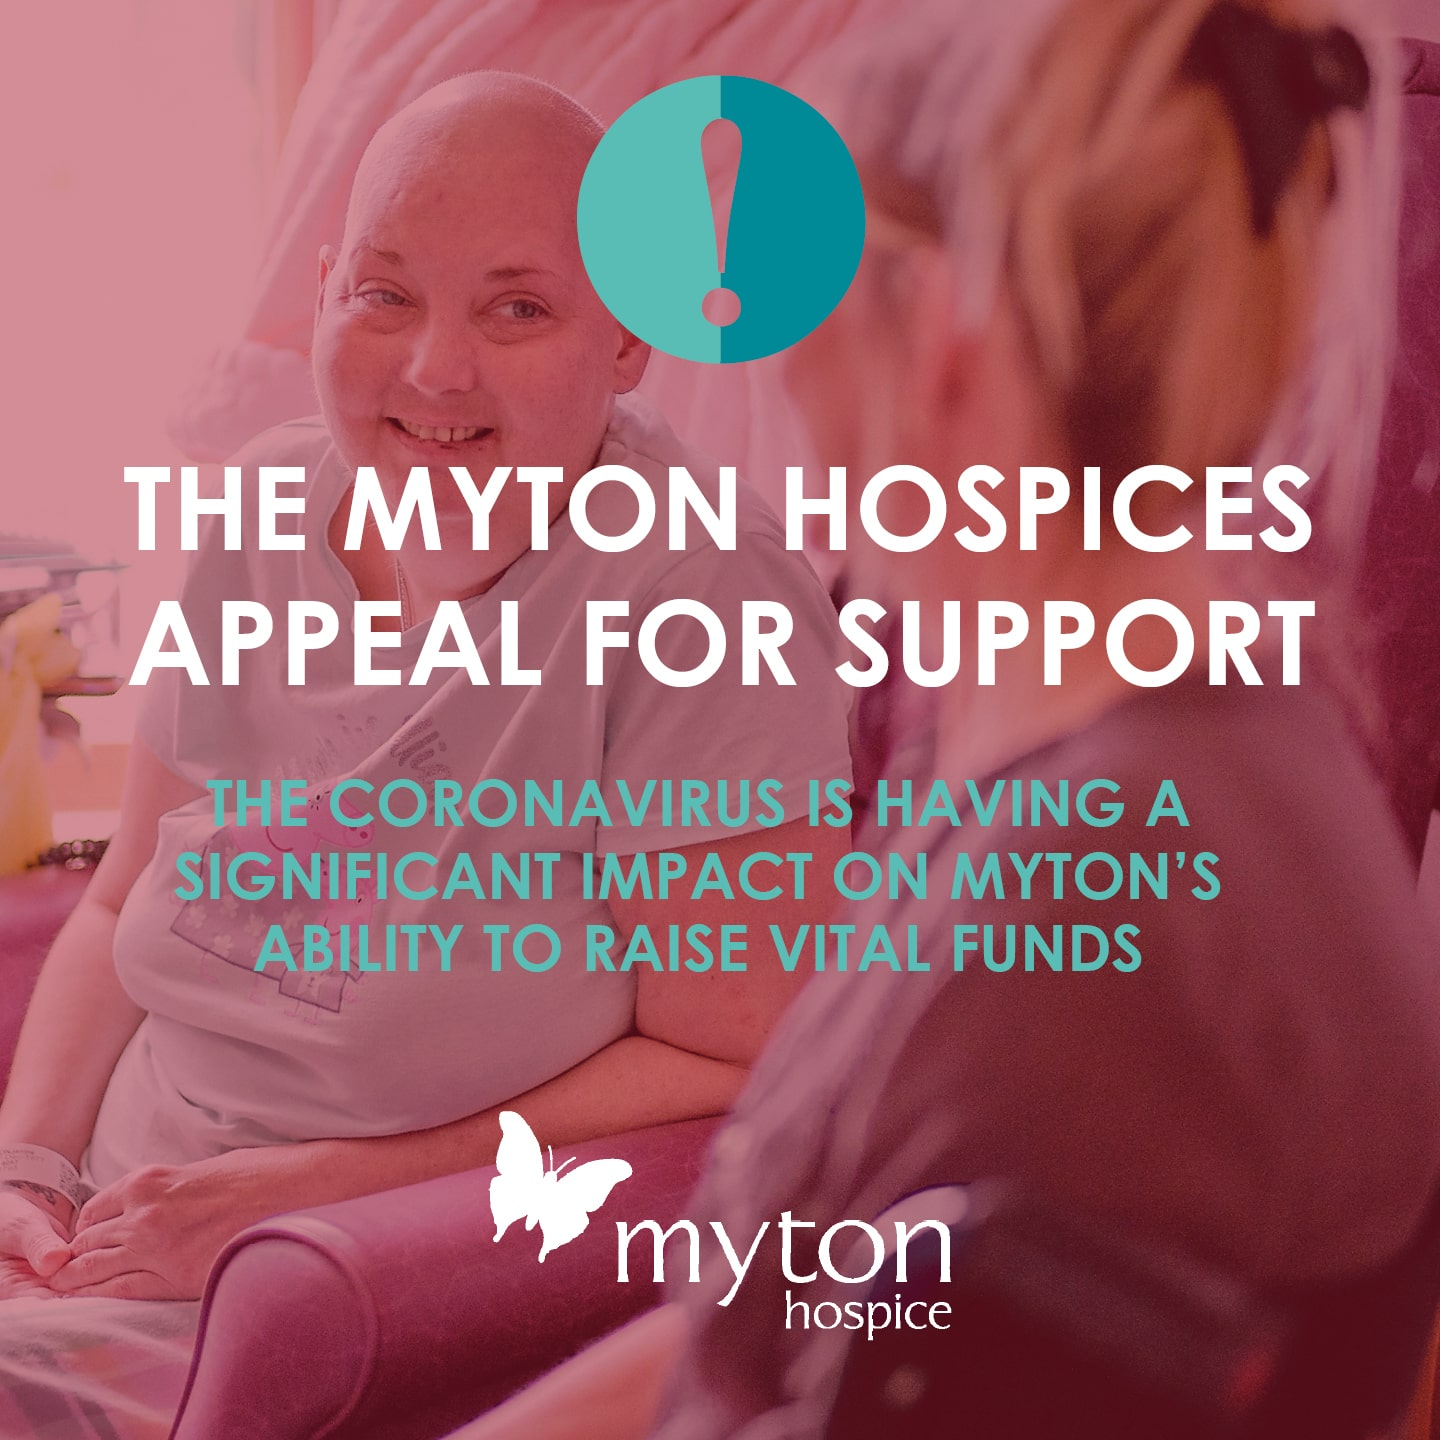 The Myton Hospices - Appeal for Support - Social Media